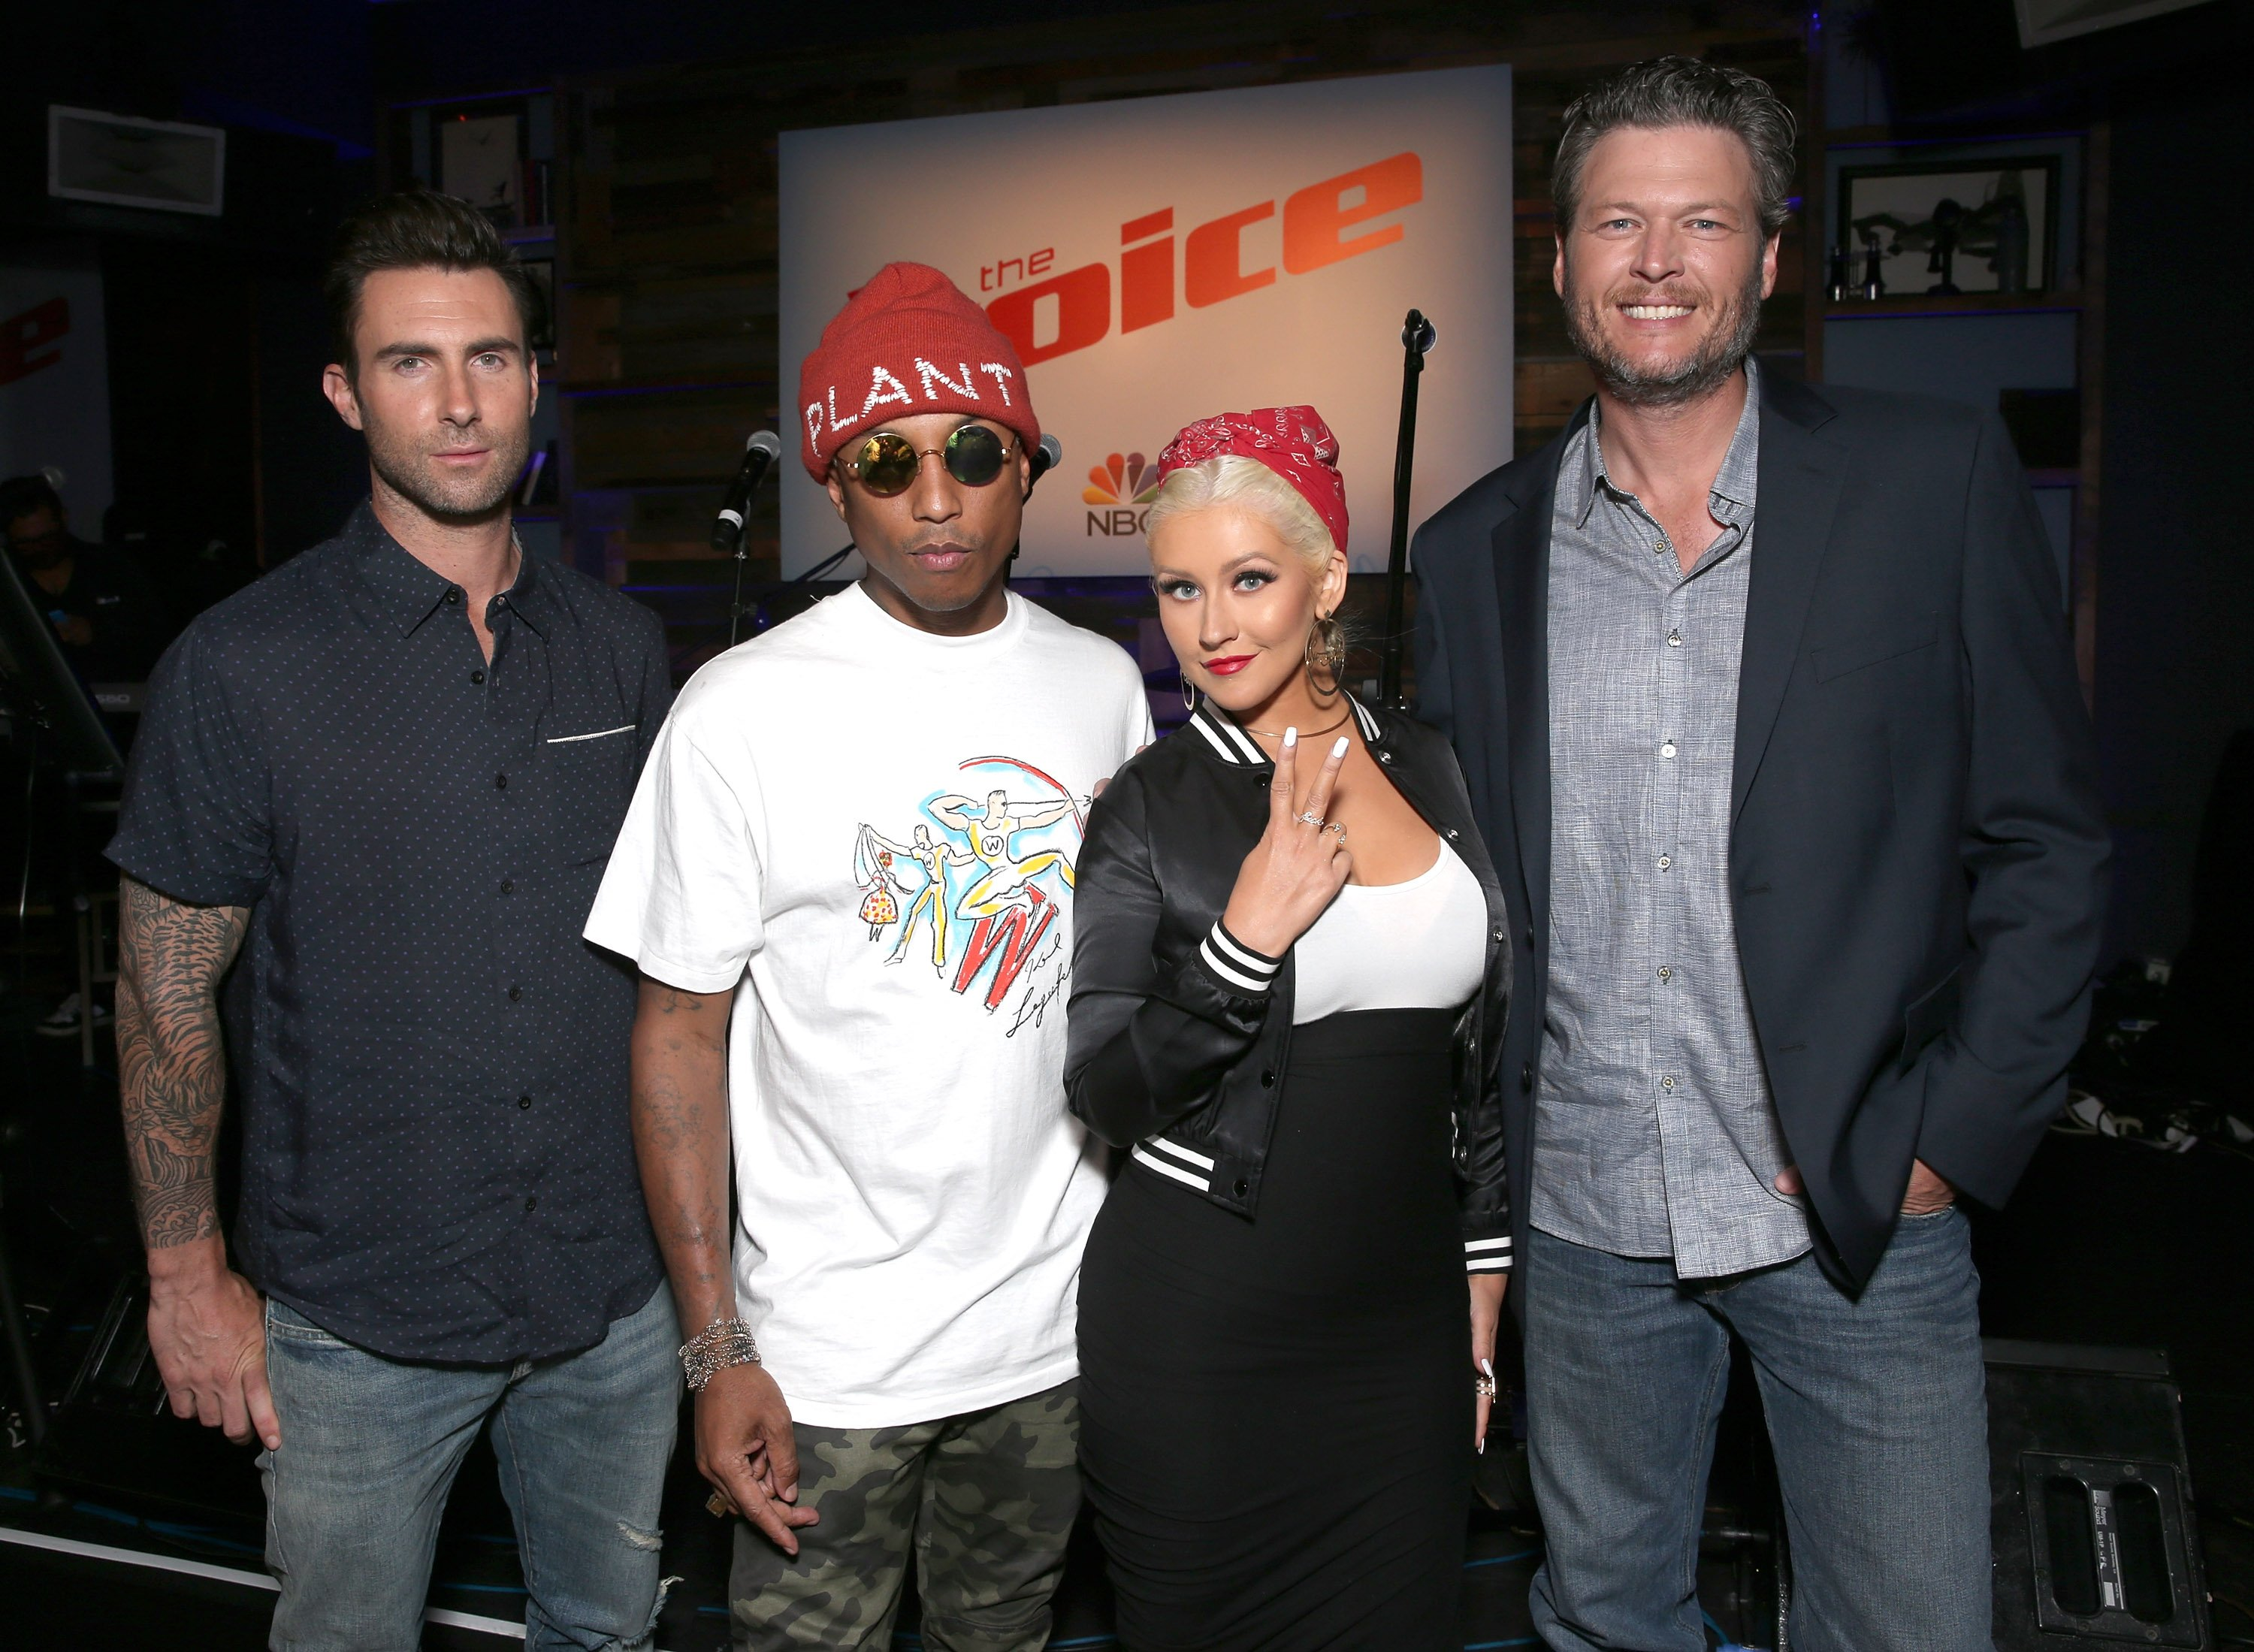 """Adam Levine, Pharrell Williams, Christina Aguilera and Blake Shelton attend """"The Voice"""" Karaoke For Charity in West Hollywood, California on April 21, 2016 